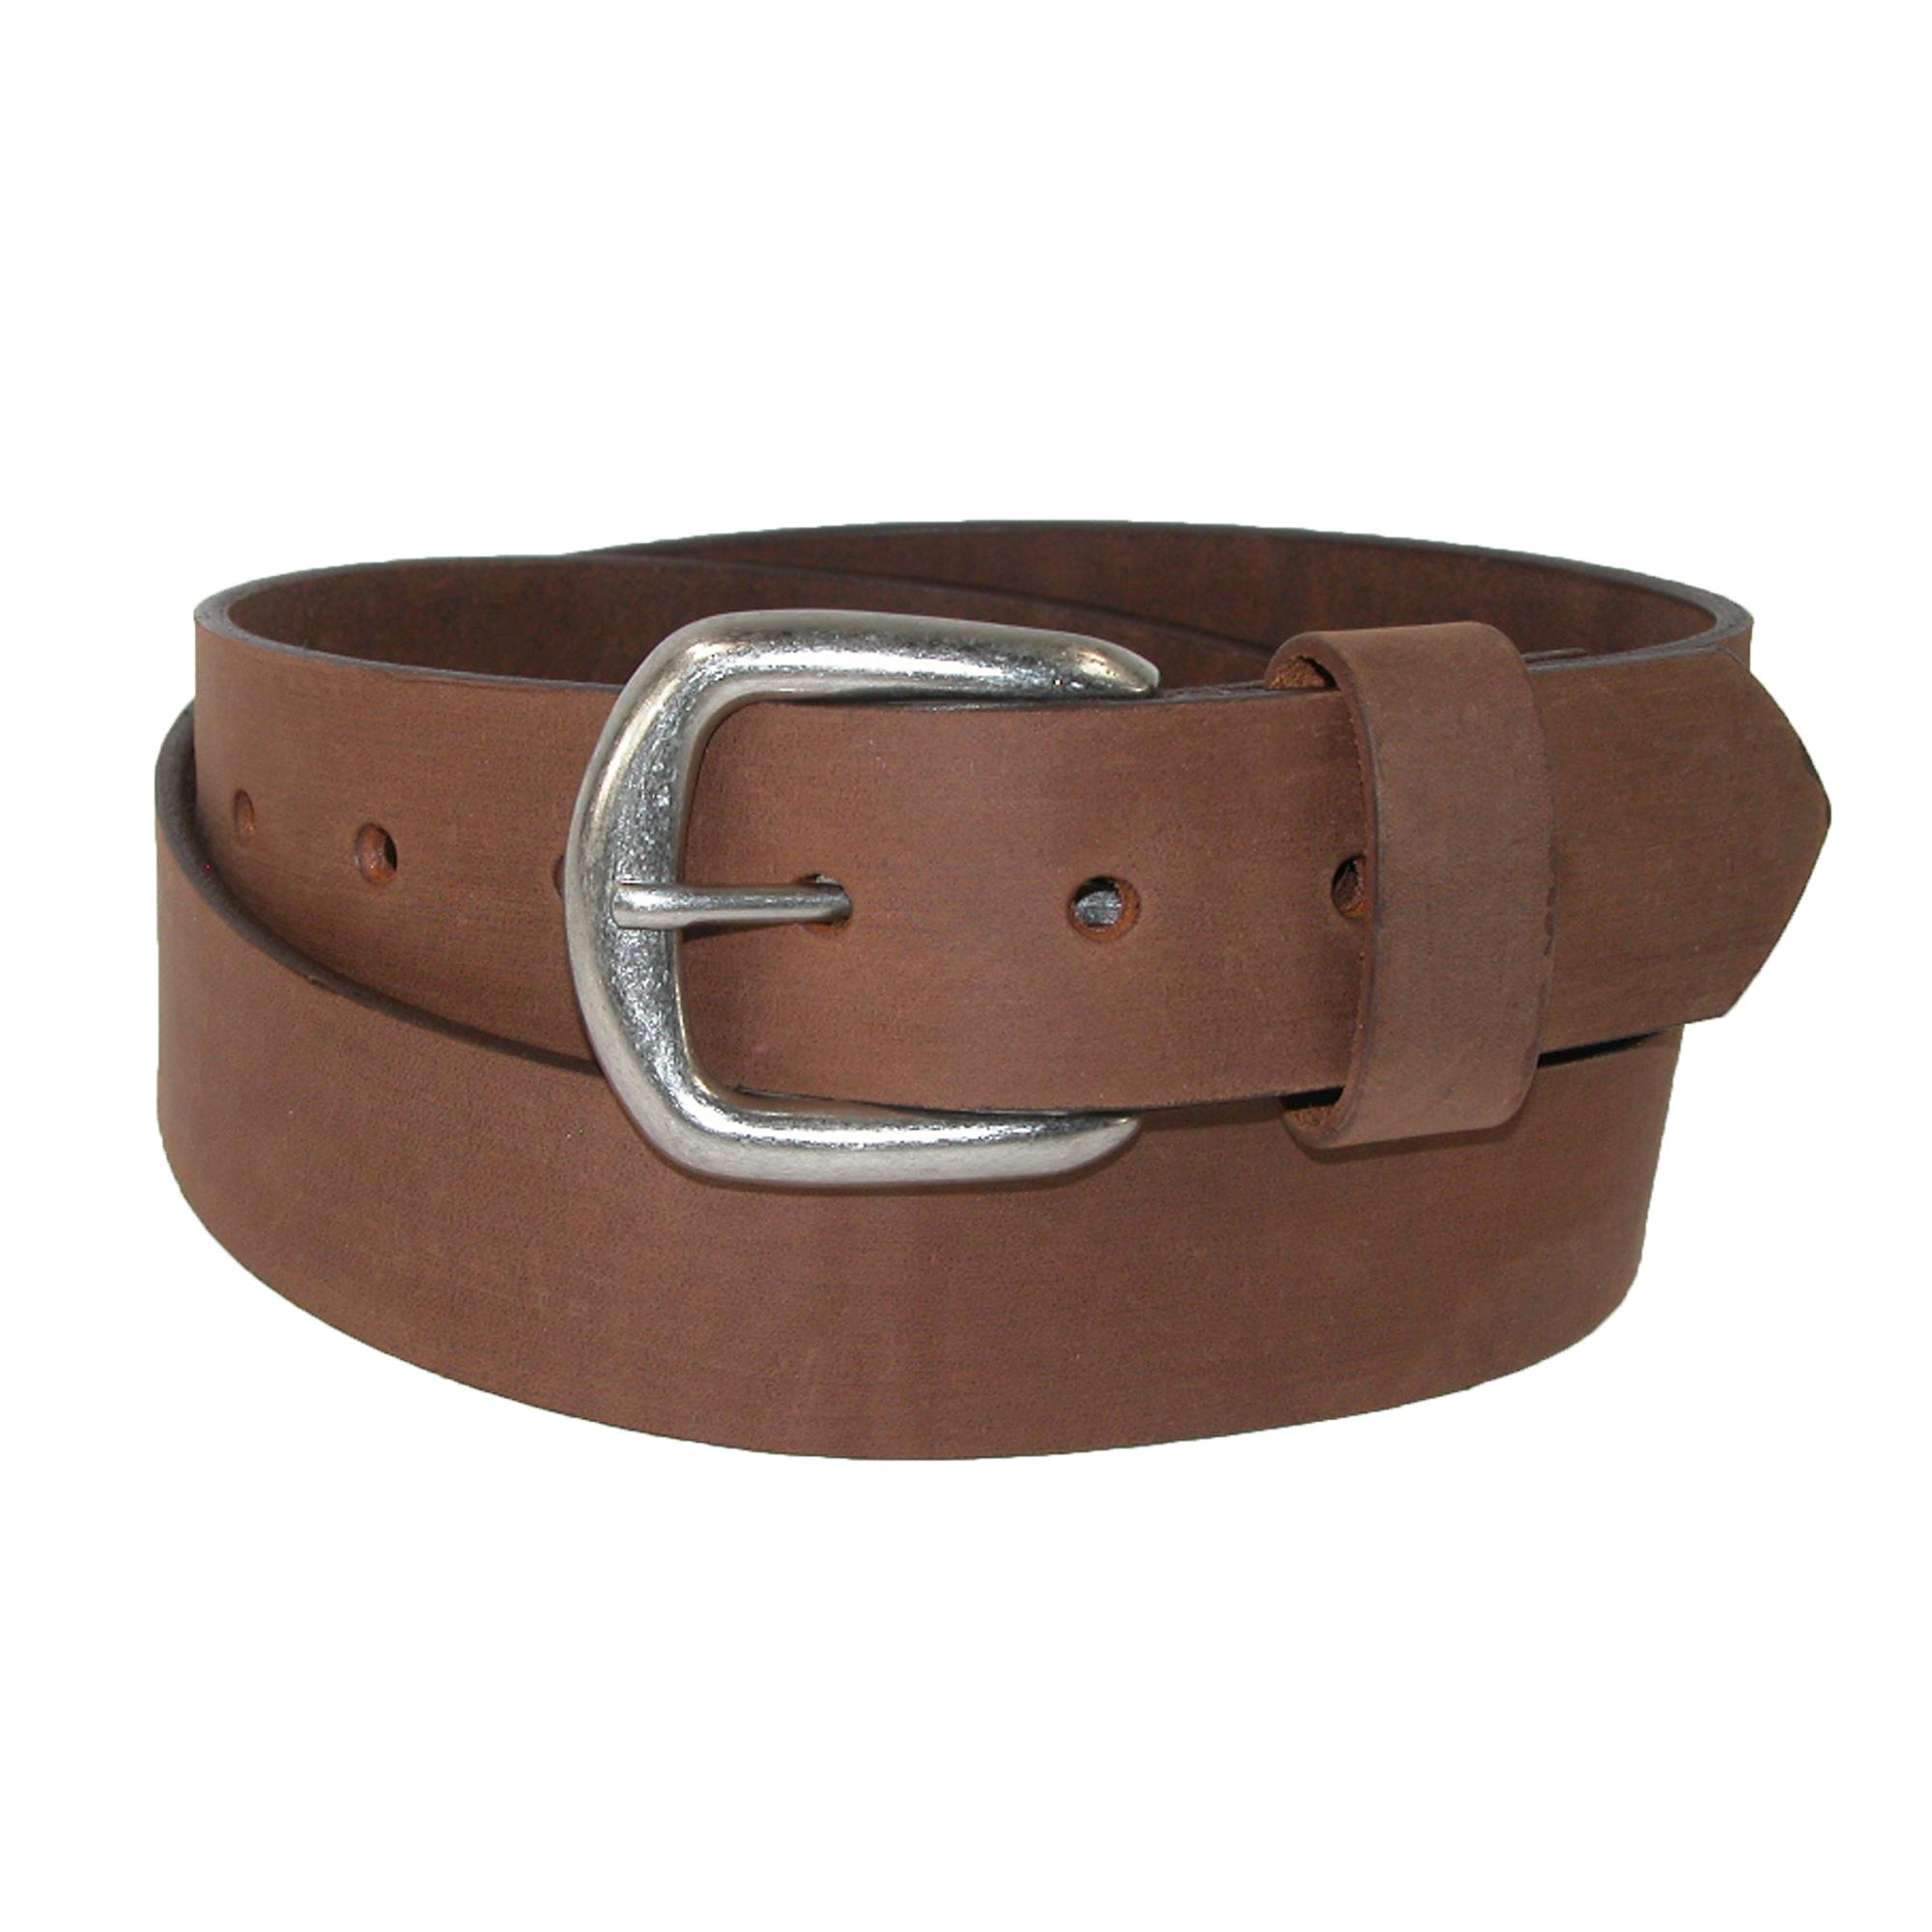 Boston Leather Men's Aged Bark Chieftain Leather Bridle Belt